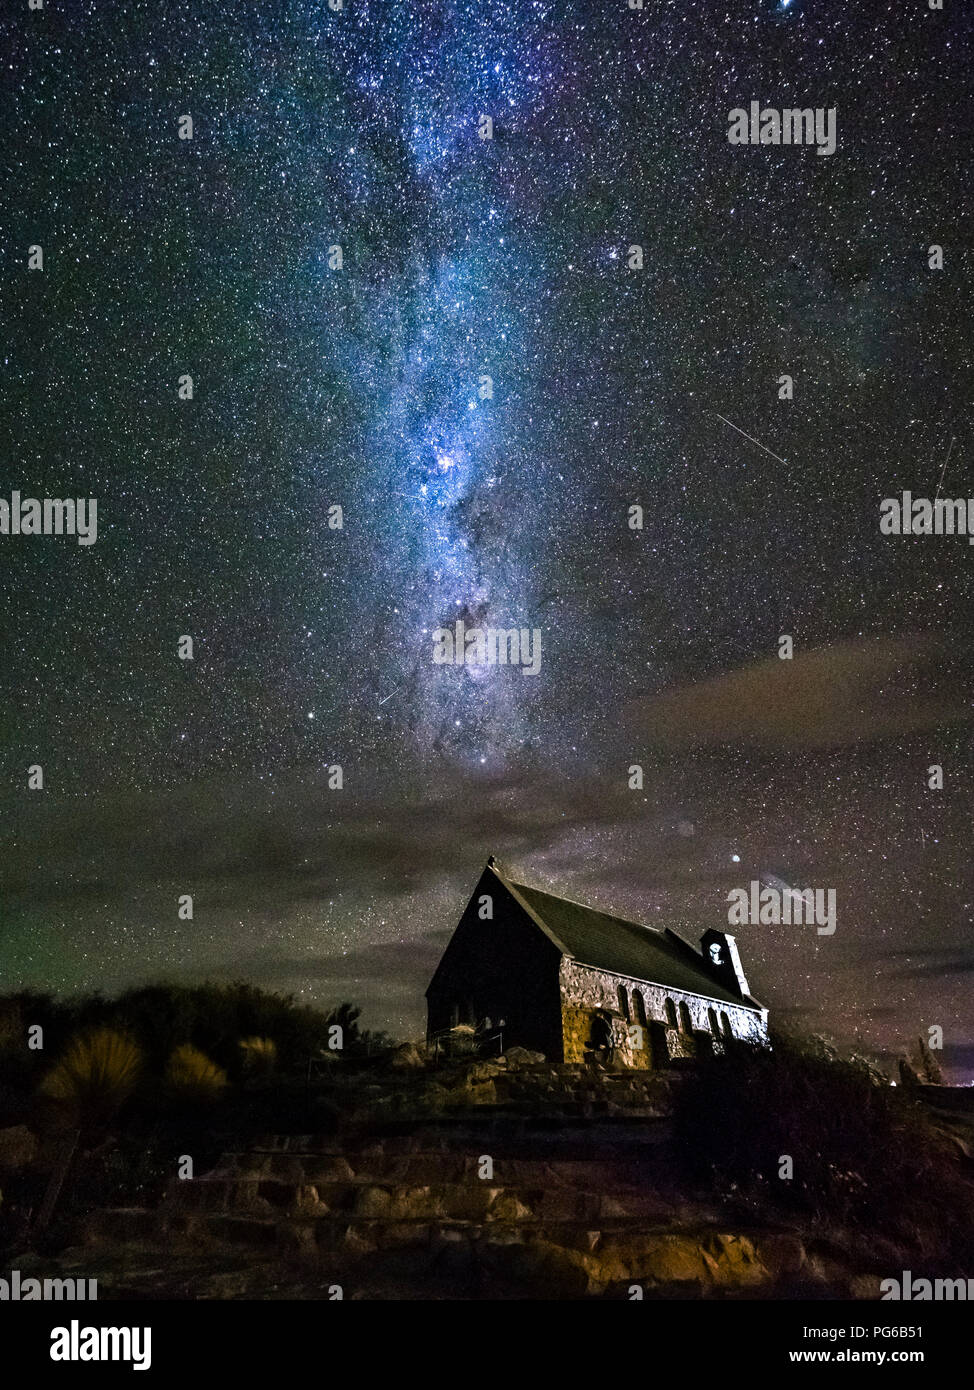 New Zealand, South Island, Canterbury Region, Church of the Good Shepherd at night - Stock Image